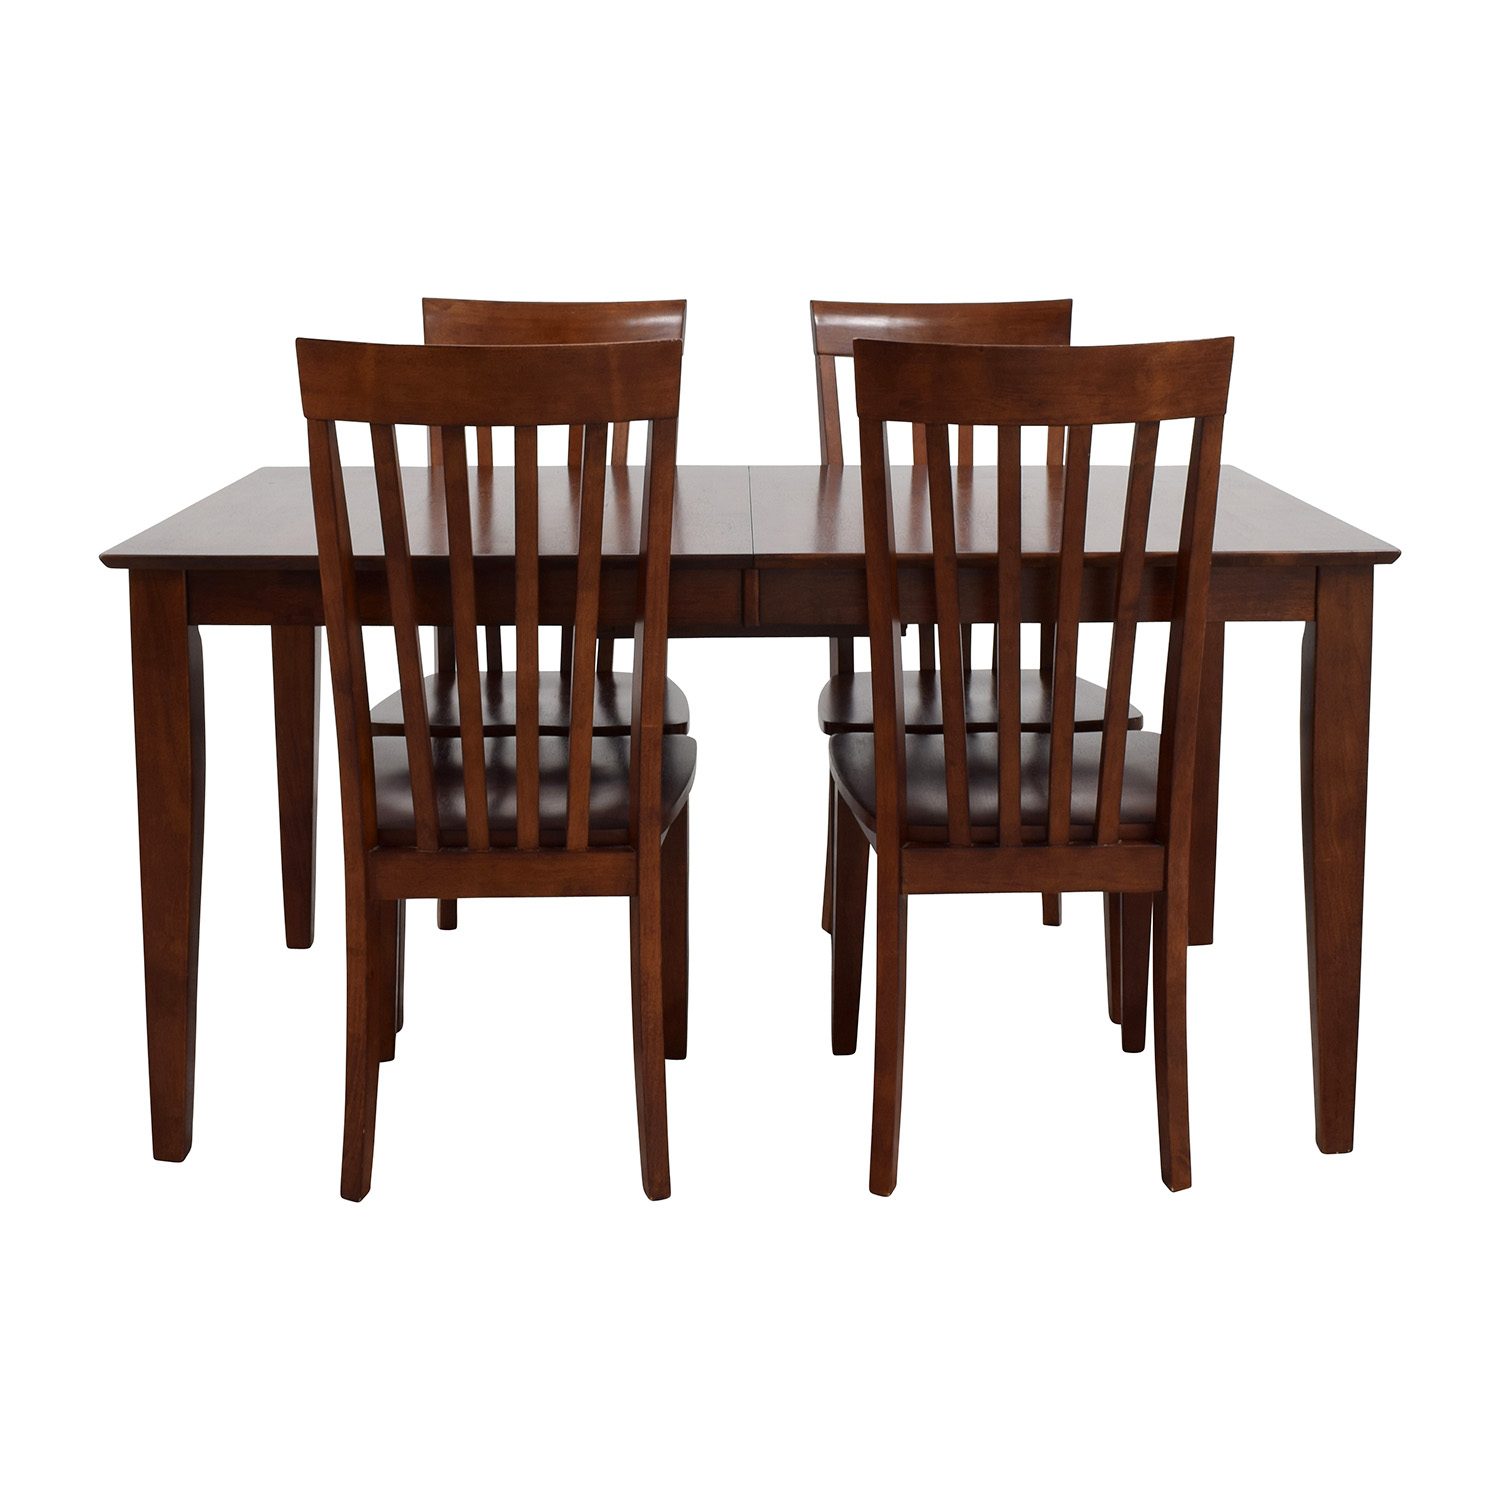 Excellent 45 Off Boston Interiors Boston Interiors Tuscany Dining Set Tables Ibusinesslaw Wood Chair Design Ideas Ibusinesslaworg